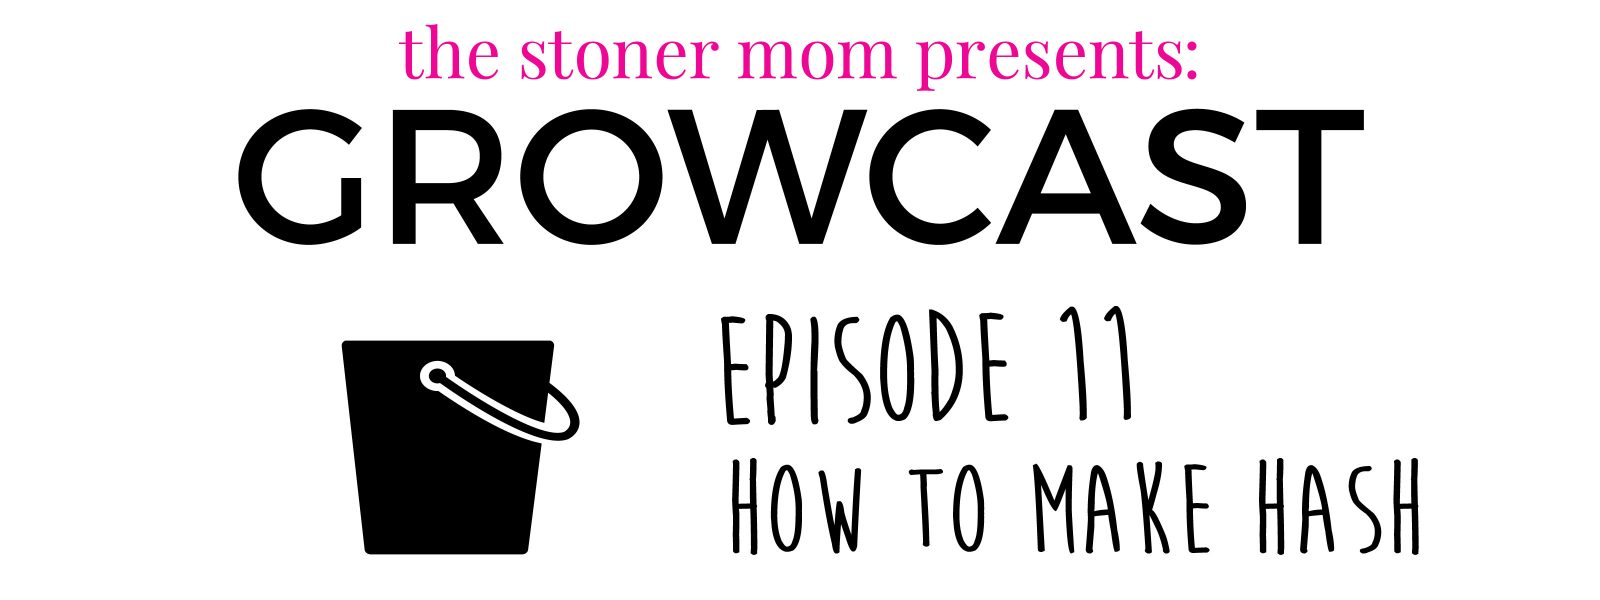 GrowCast Episode 11: How to Make Hash